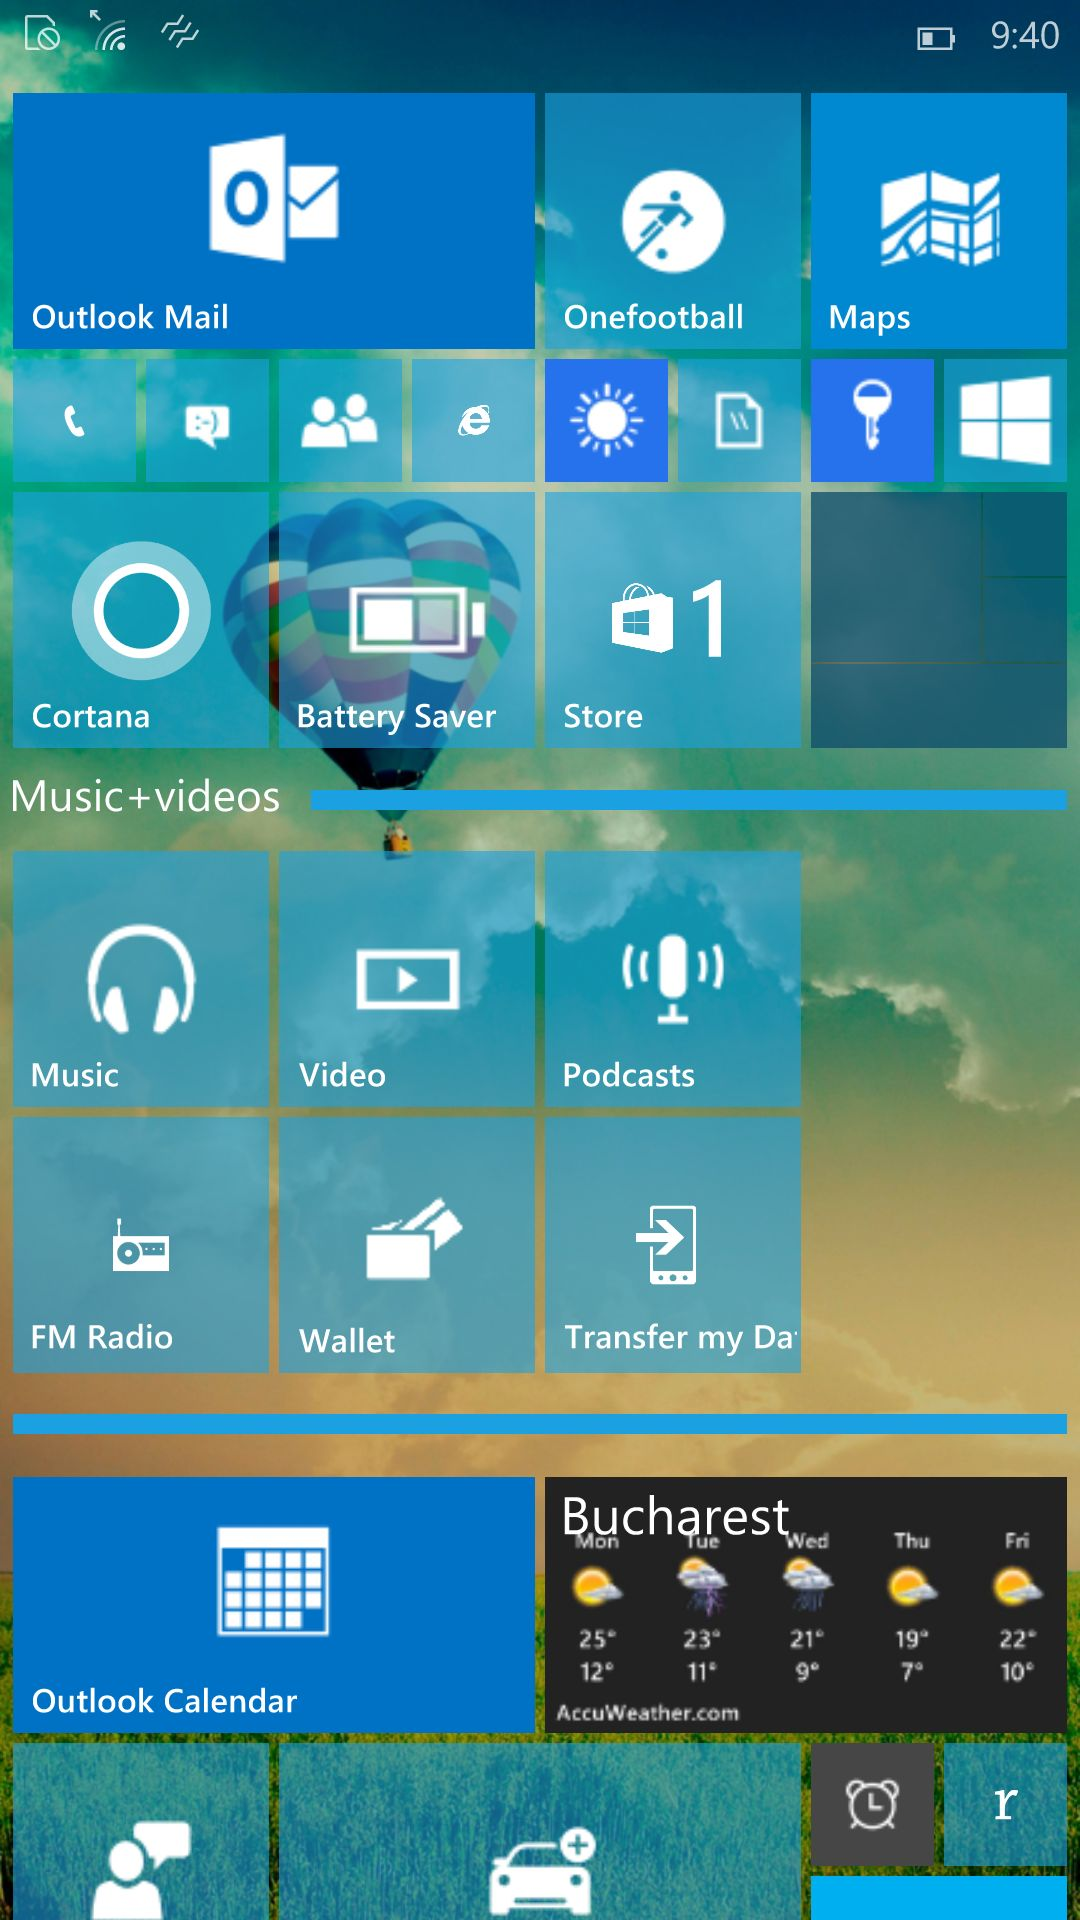 Windows-10-Mobile-Build-10080-Screenshots-481222-3